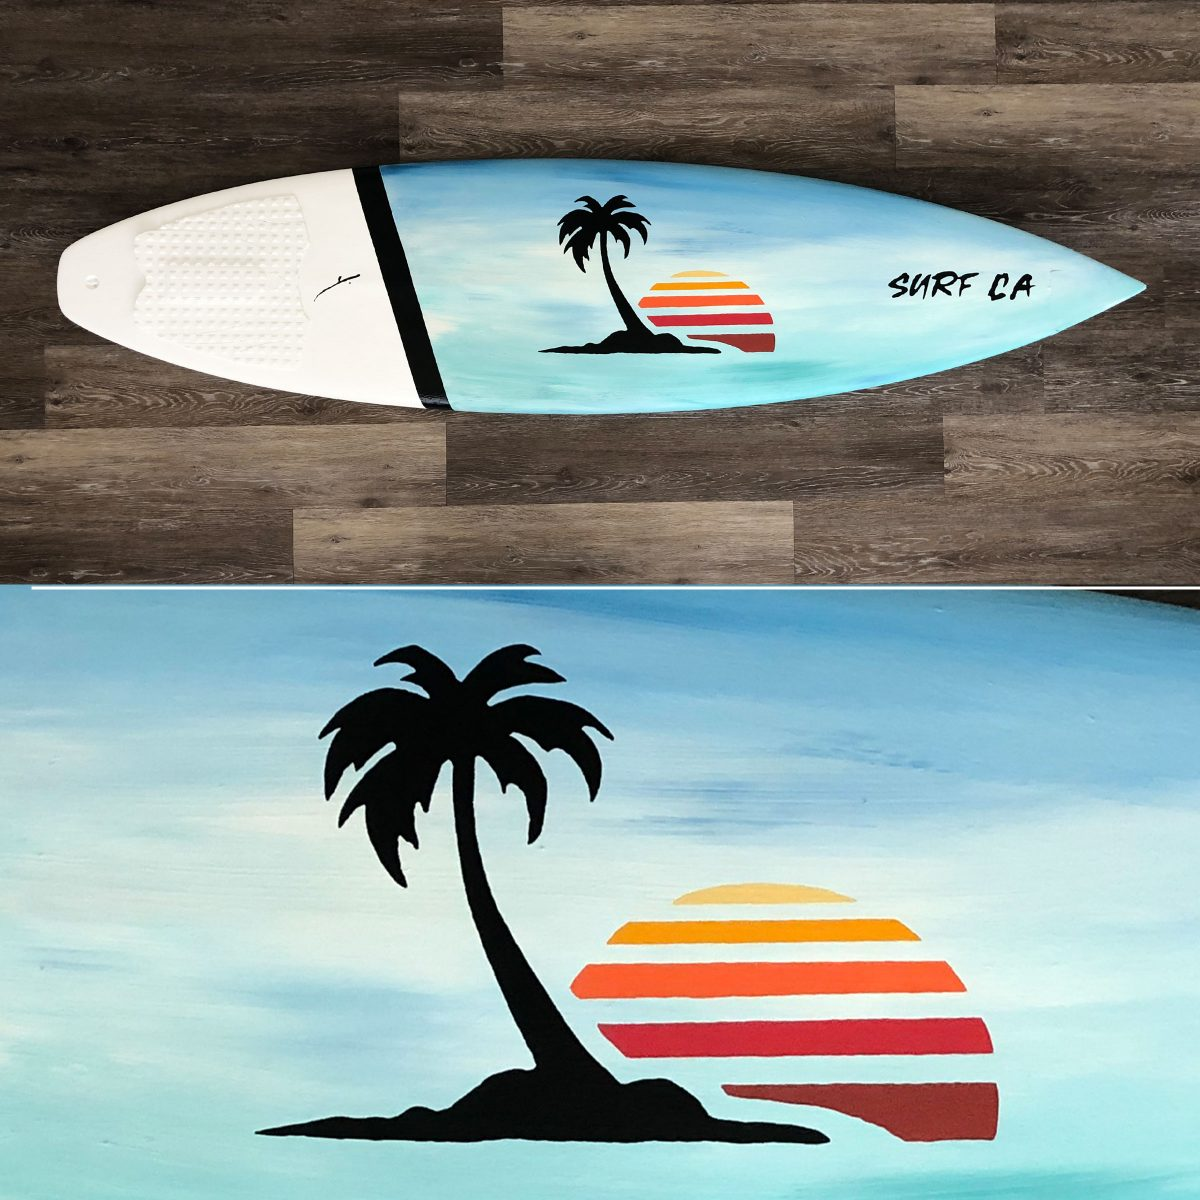 SURF CALIFORNIA surfboard art by kikicutt